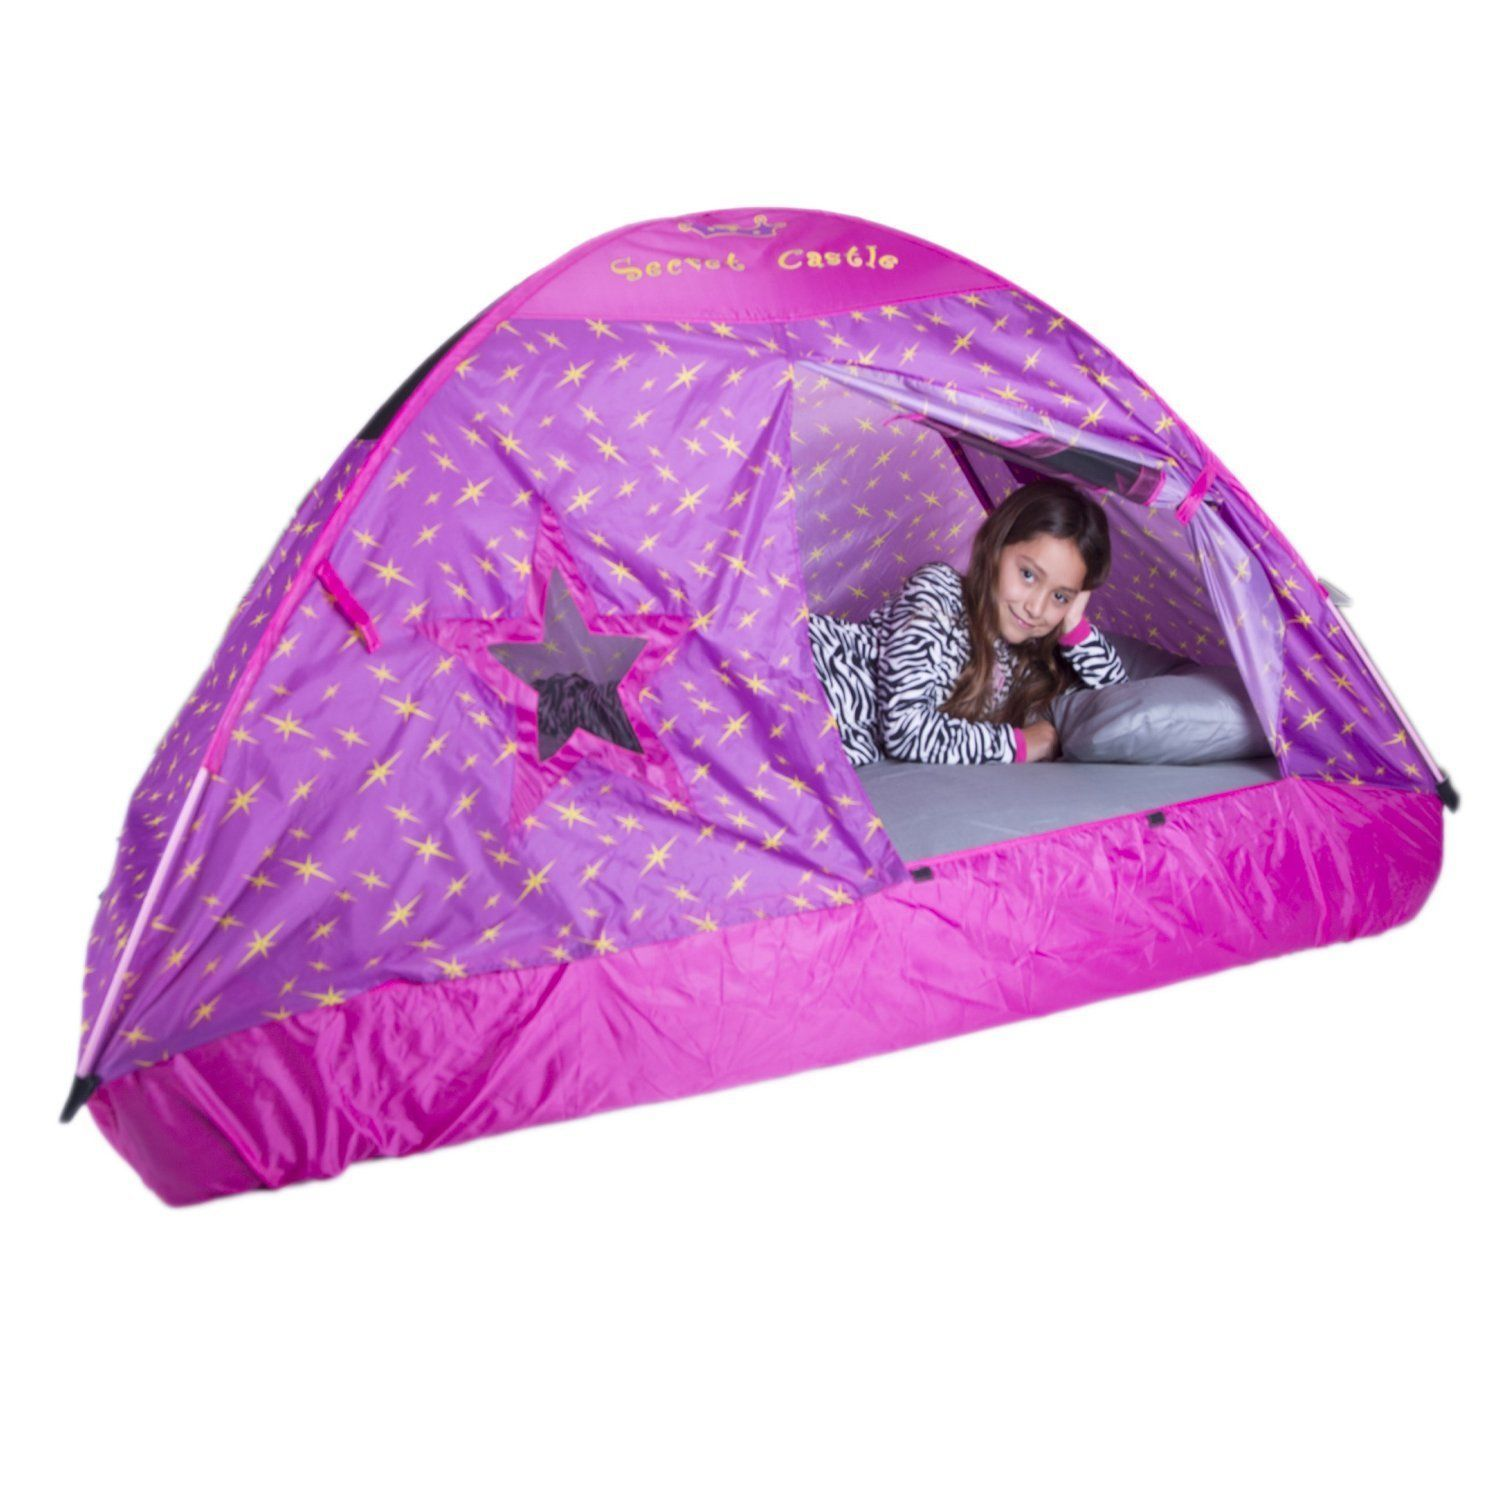 NEW Pacific Play Tent Secret Castle Twin Bed Tent Girls ...